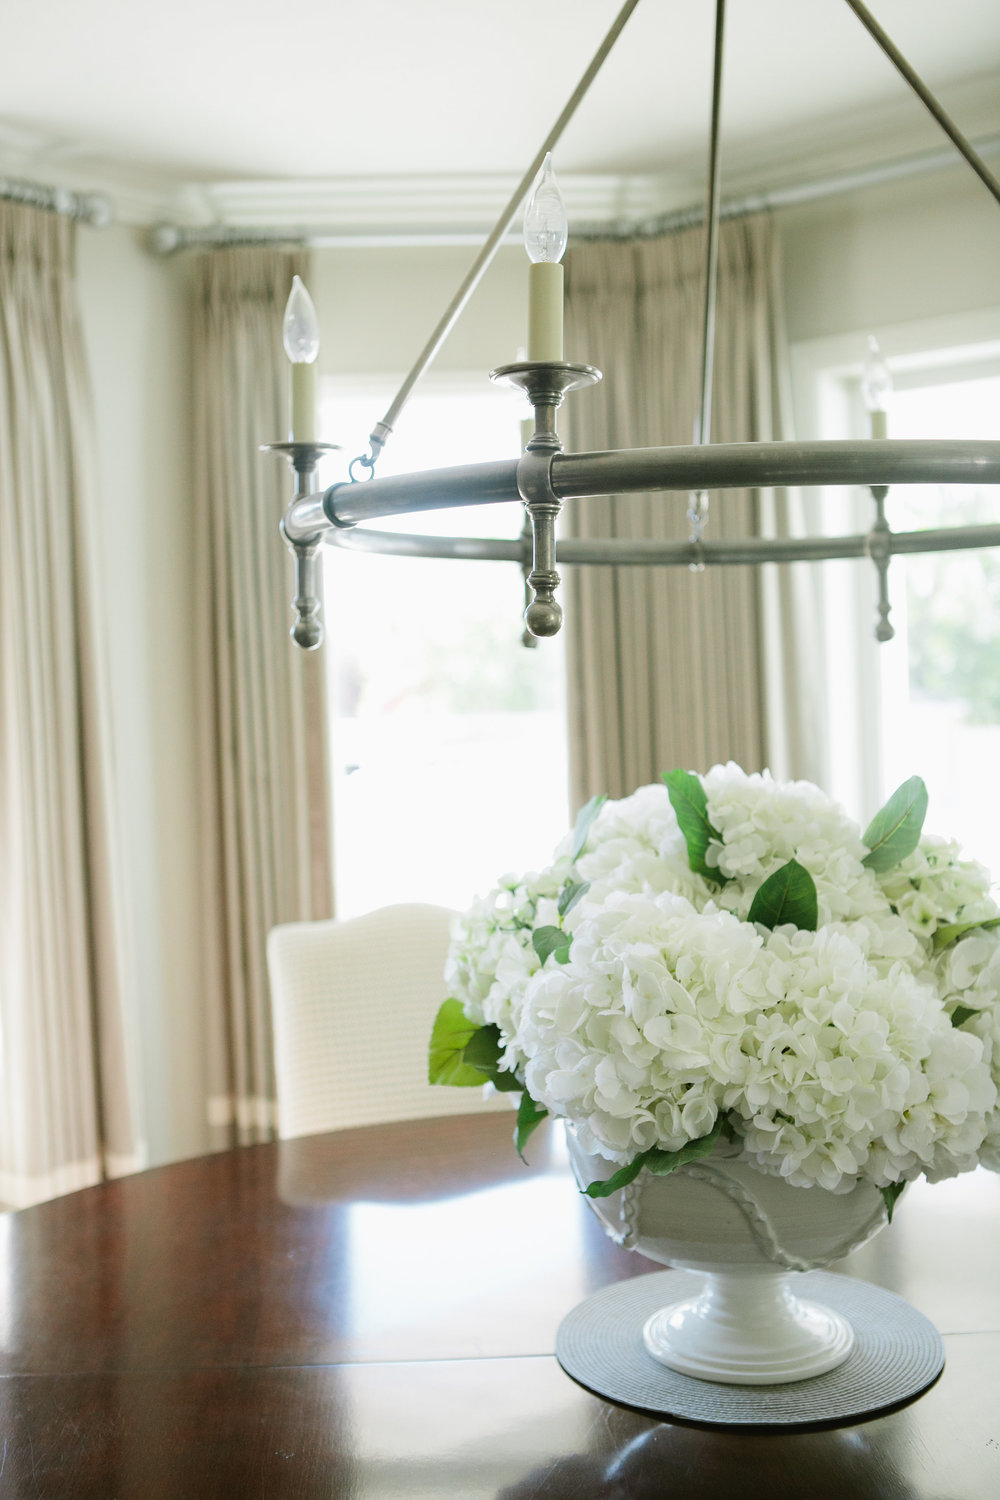 These gorgeous white hydrangea are always a favorite. They really make this dining space come alive!